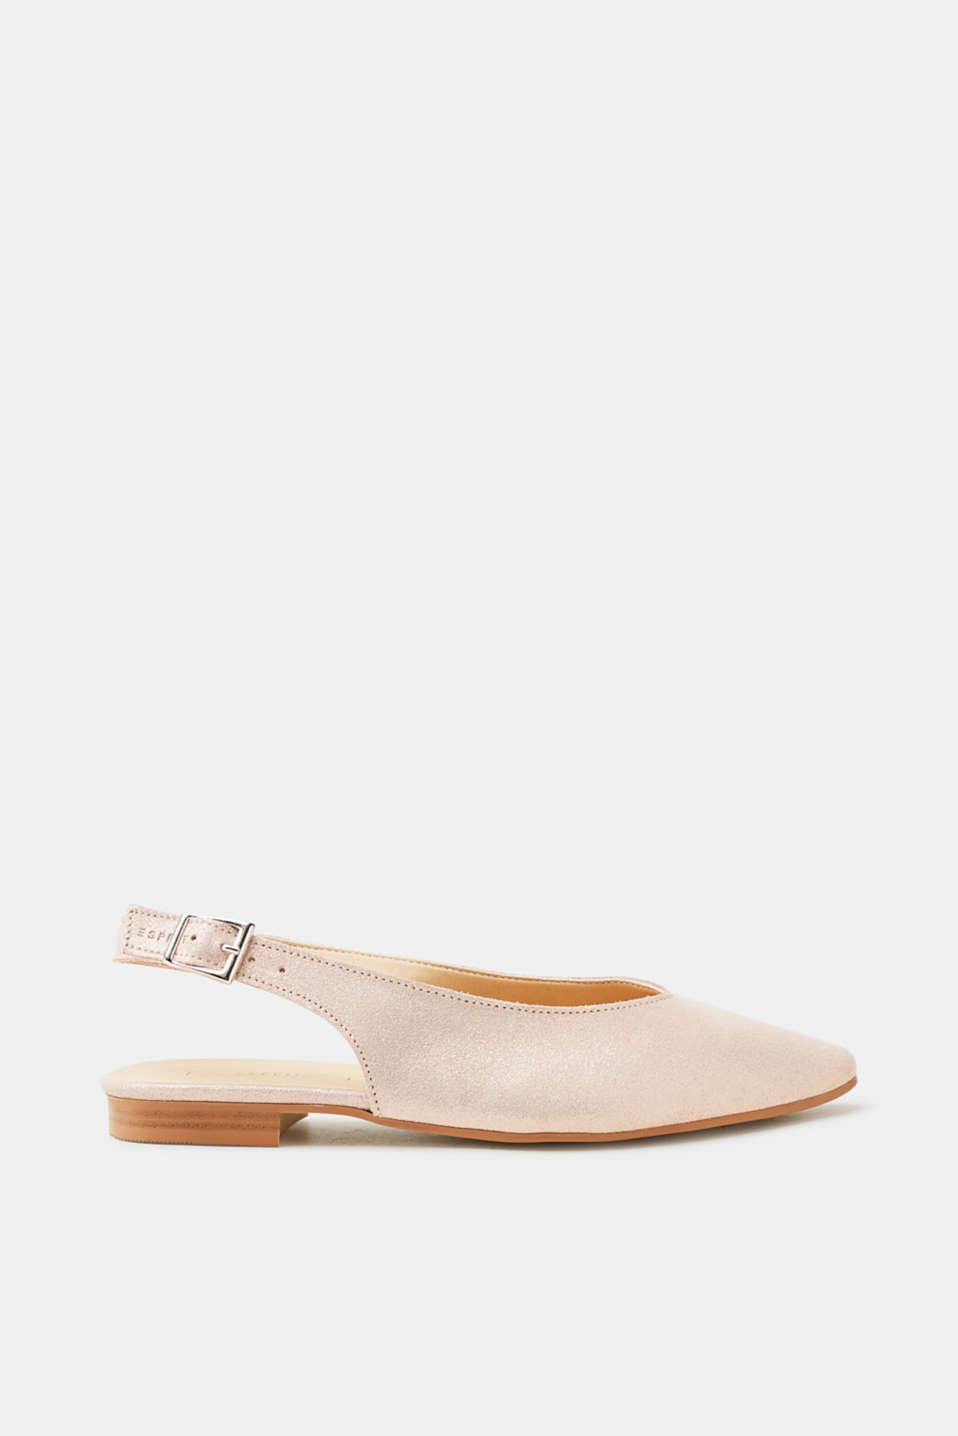 A feminine flat update! Sling back straps give these pointed ballerinas their lightweight yet elegant look.